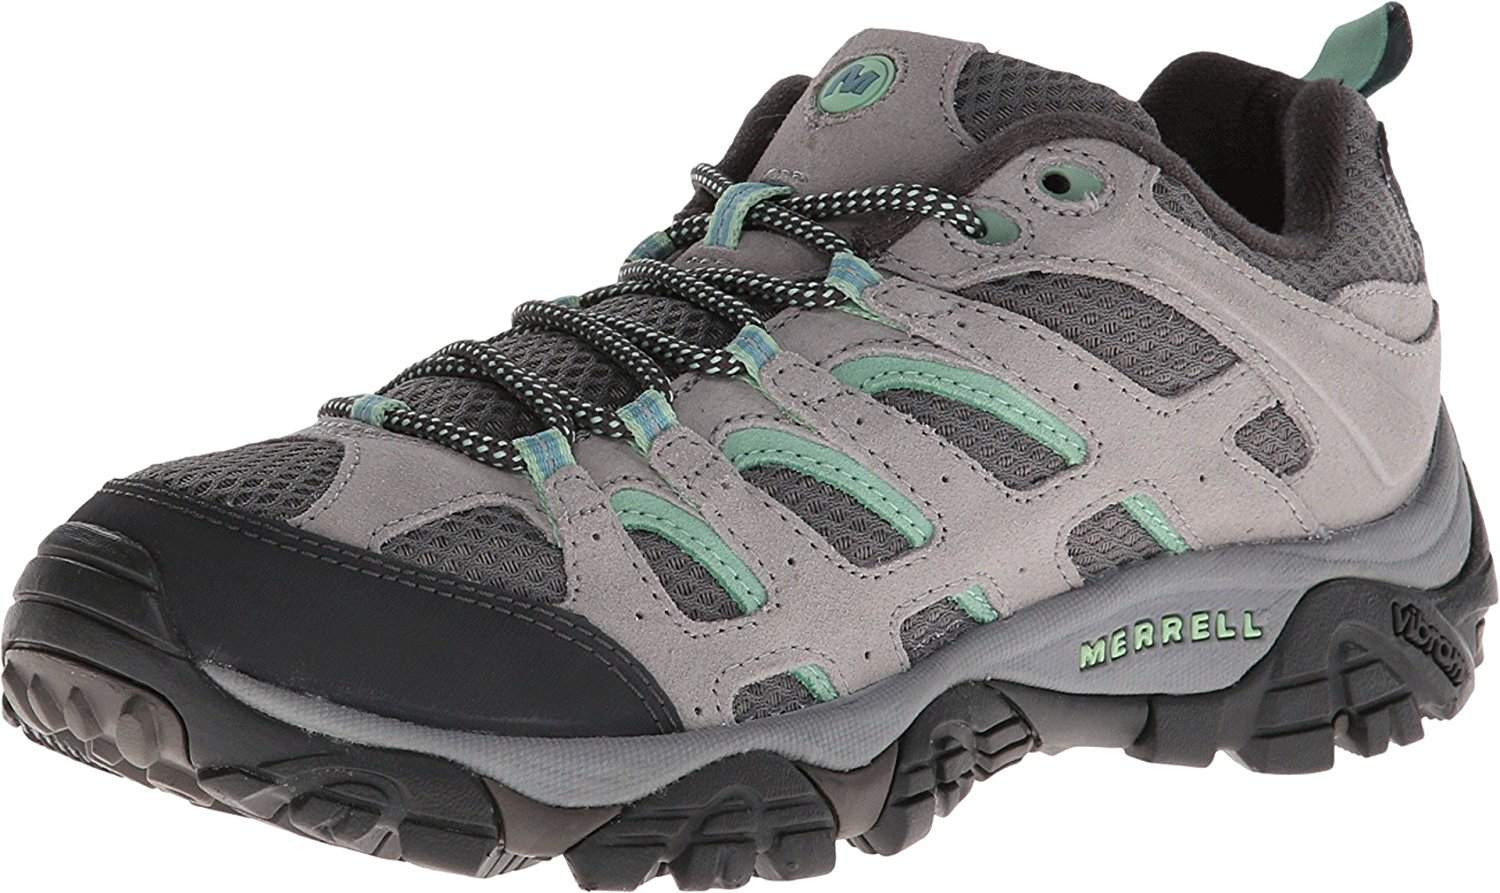 7599438a The 7 Best Hiking Boots for Women of 2019